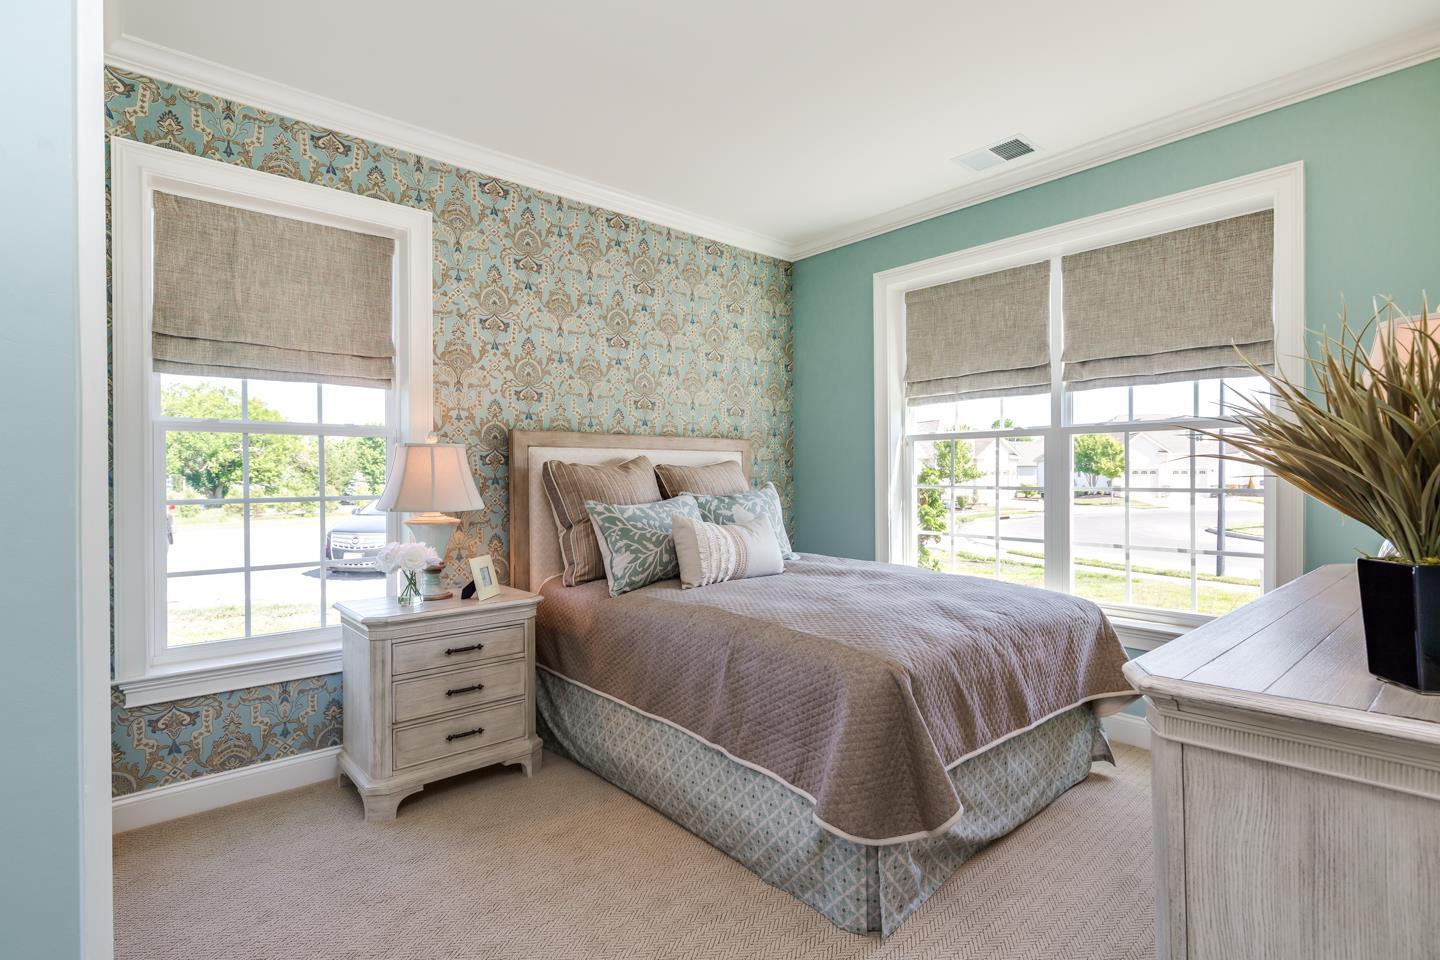 Bedroom featured in The Marigold By Bruce Paparone, Inc. in Philadelphia, NJ